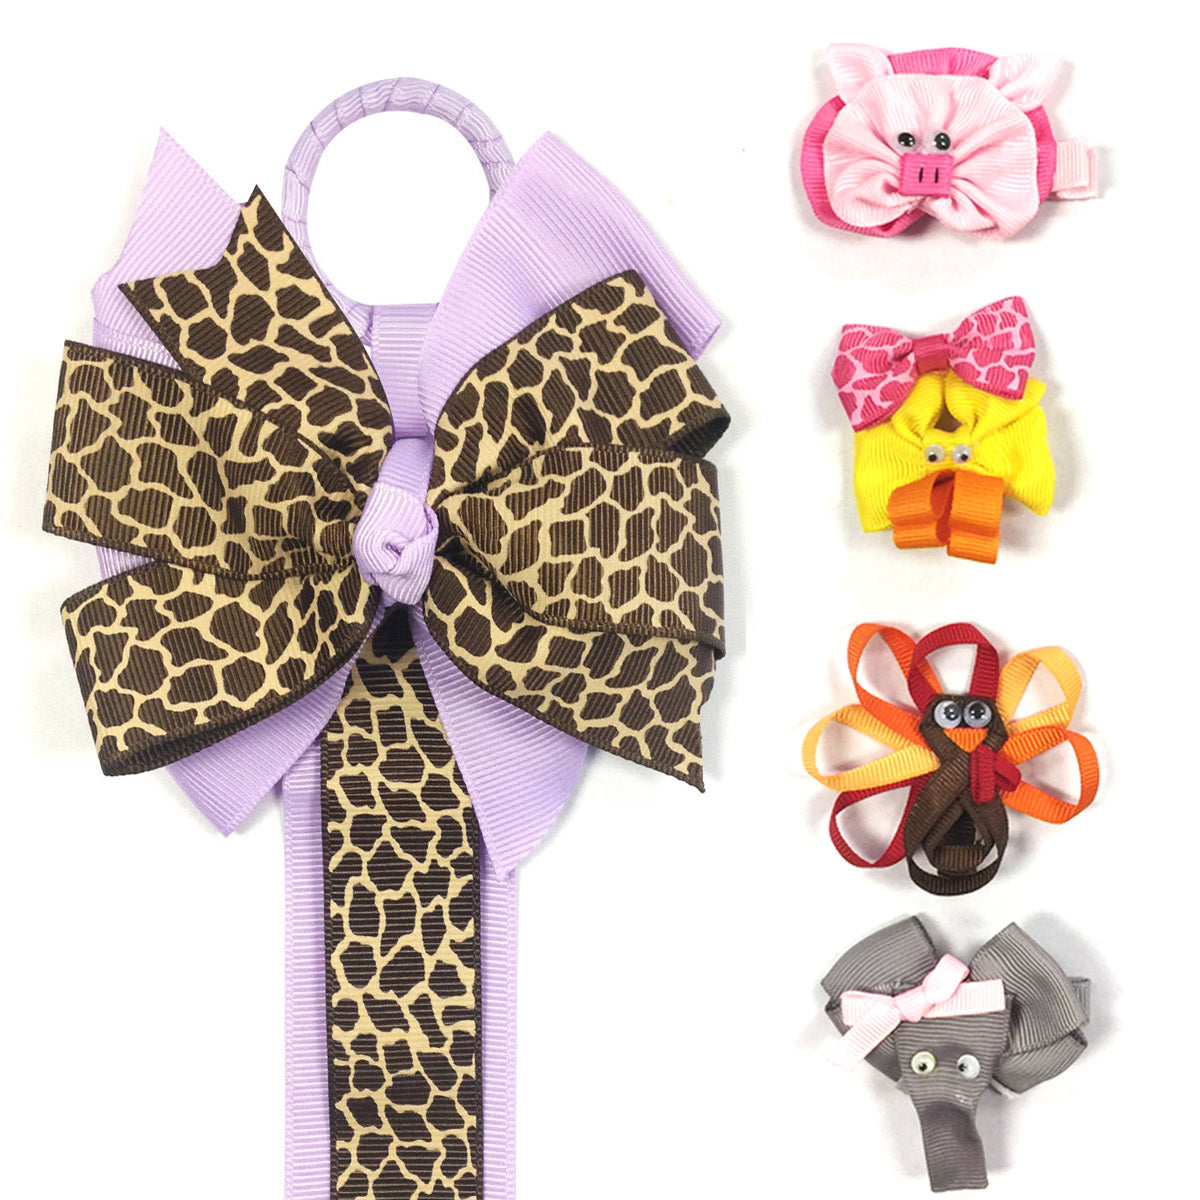 Wrapables Duck, Turkey, Elephant, Pig Ribbon Sculpture Hair Clips with Leopard Hair Clip / Hair Bow Holder